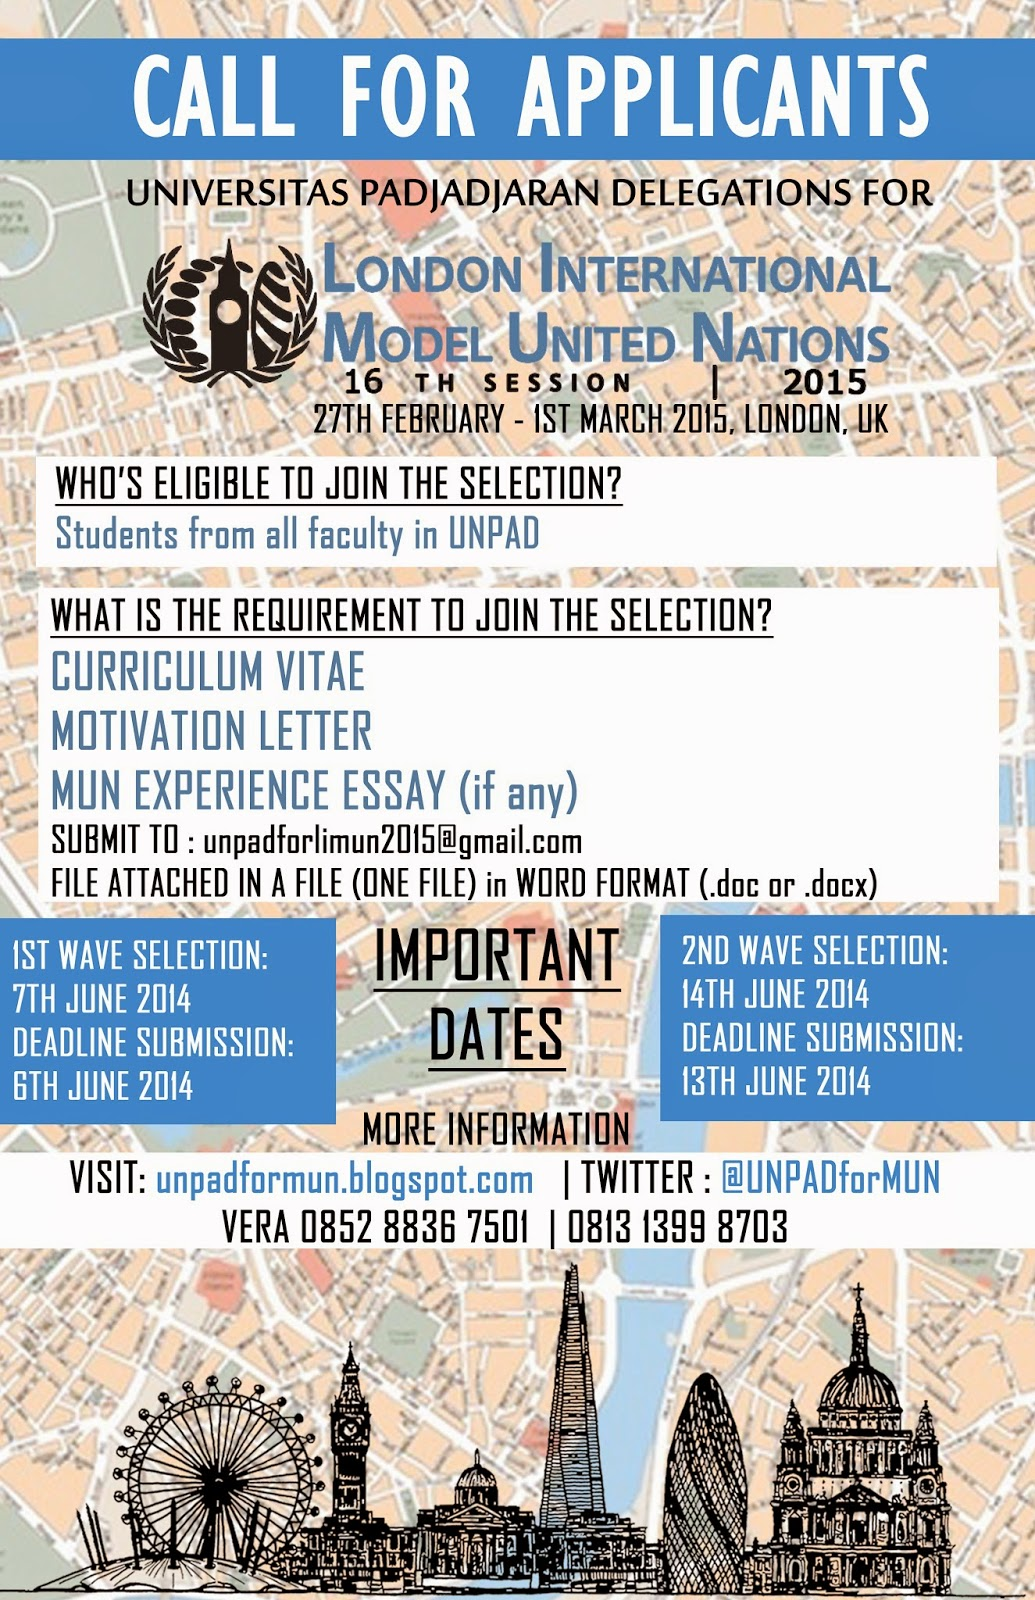 universitas padjadjaran for model united nations london limun is an academic simulation of the united nations that aims to educate participants about current topics in international relations diplomacy and the